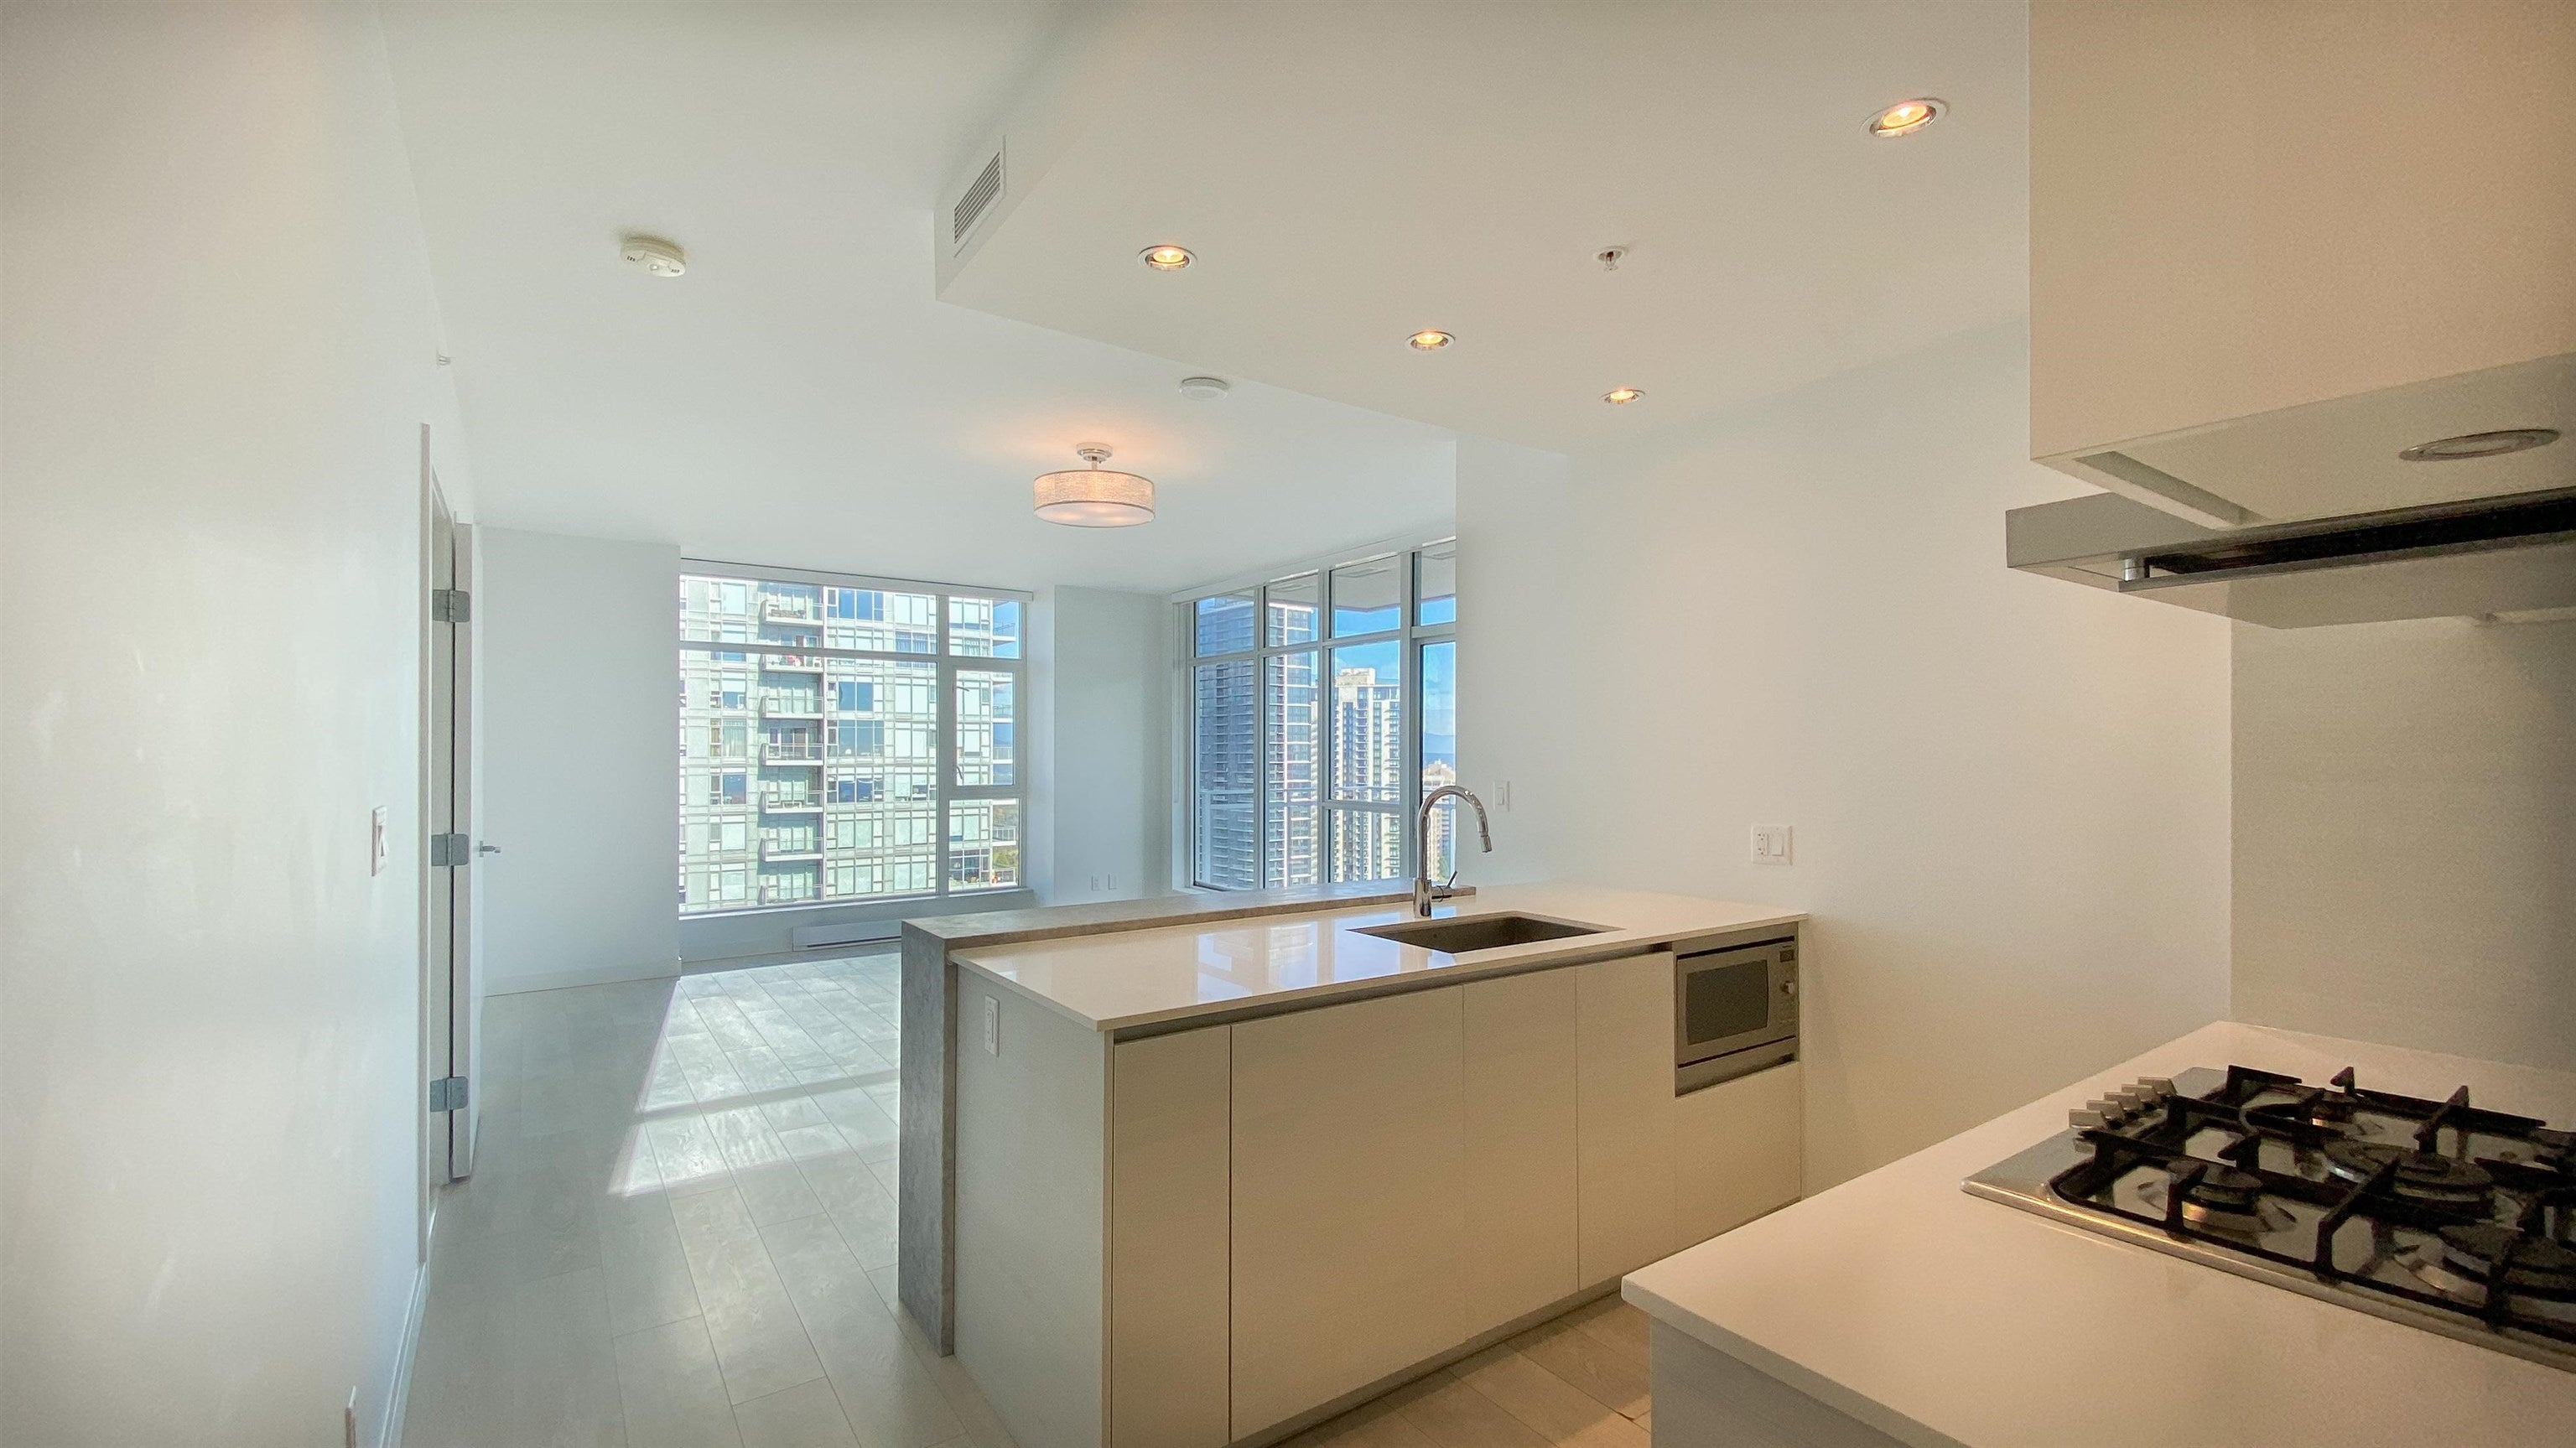 2510 4670 ASSEMBLY WAY - Metrotown Apartment/Condo for sale, 2 Bedrooms (R2625732) - #14